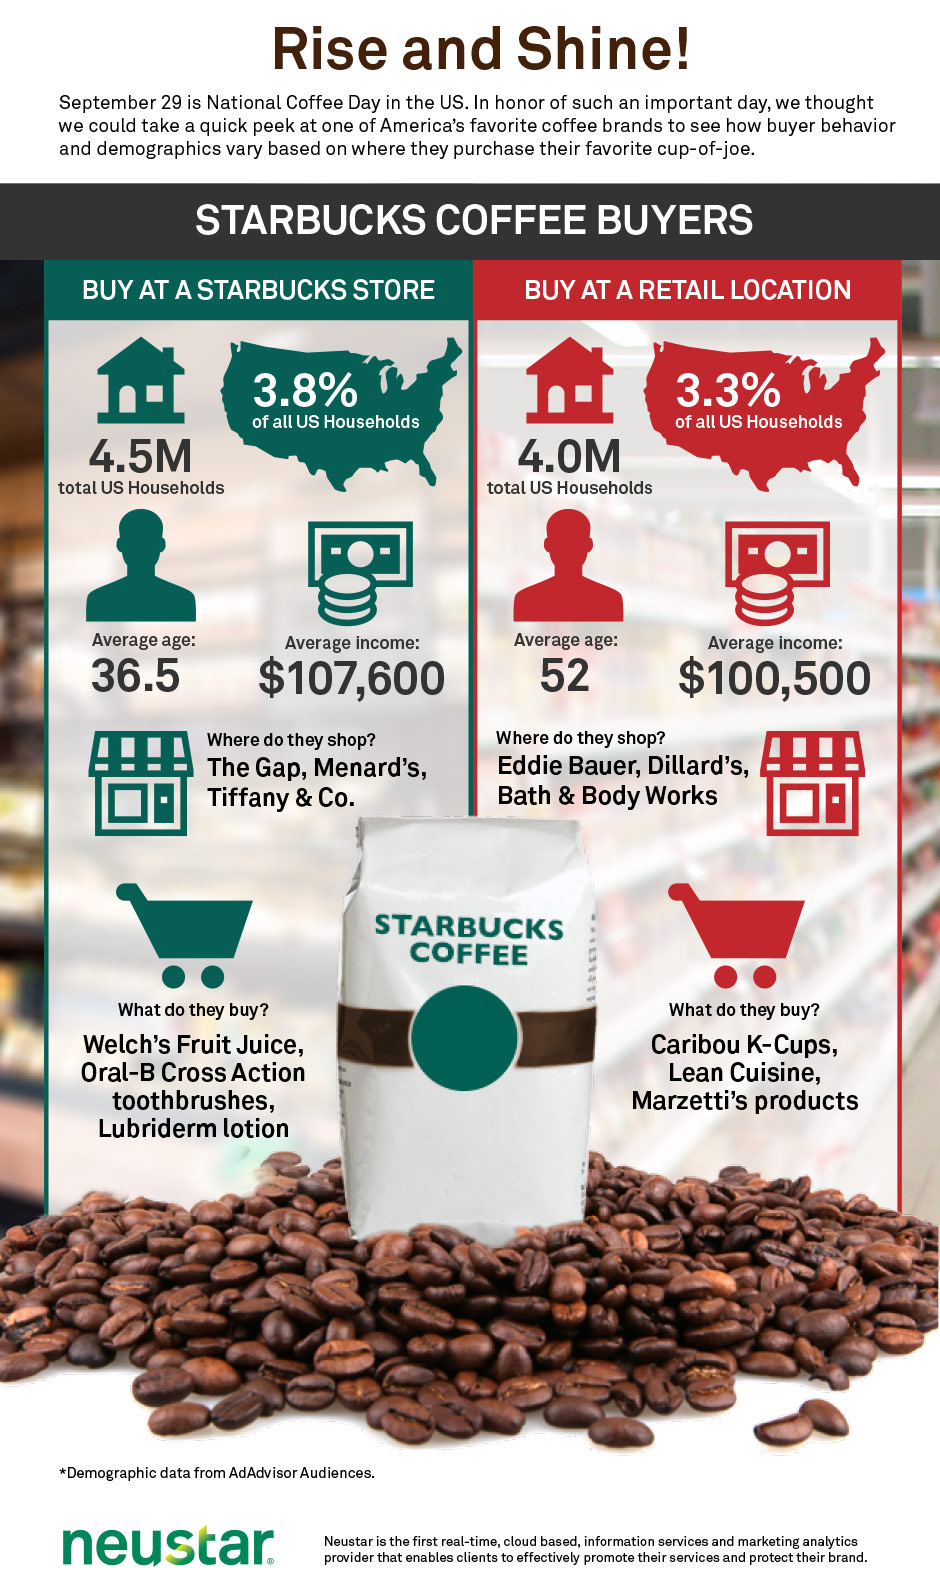 starbucks and consumer behavior A new study released jan 6 examined consumer behavior before and after calorie counts were posted, and determined that when restaurants post calories on menu boards, there is a reduction in calories per transaction.